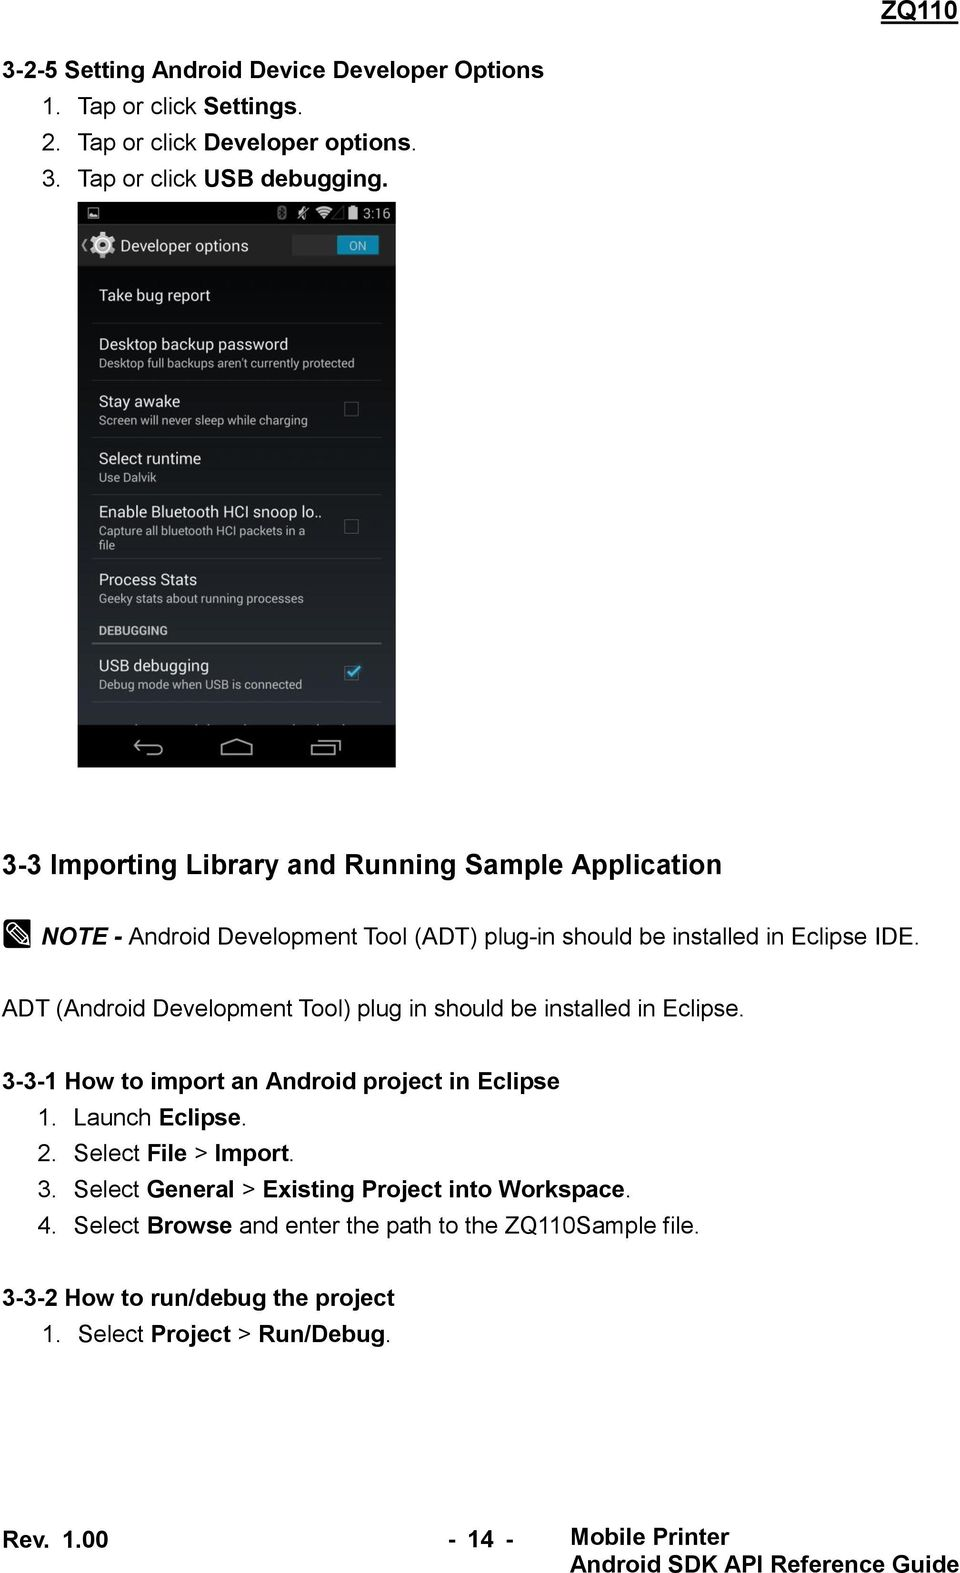 ZQ110  Mobile Printer Android SDK  and API Reference Guide